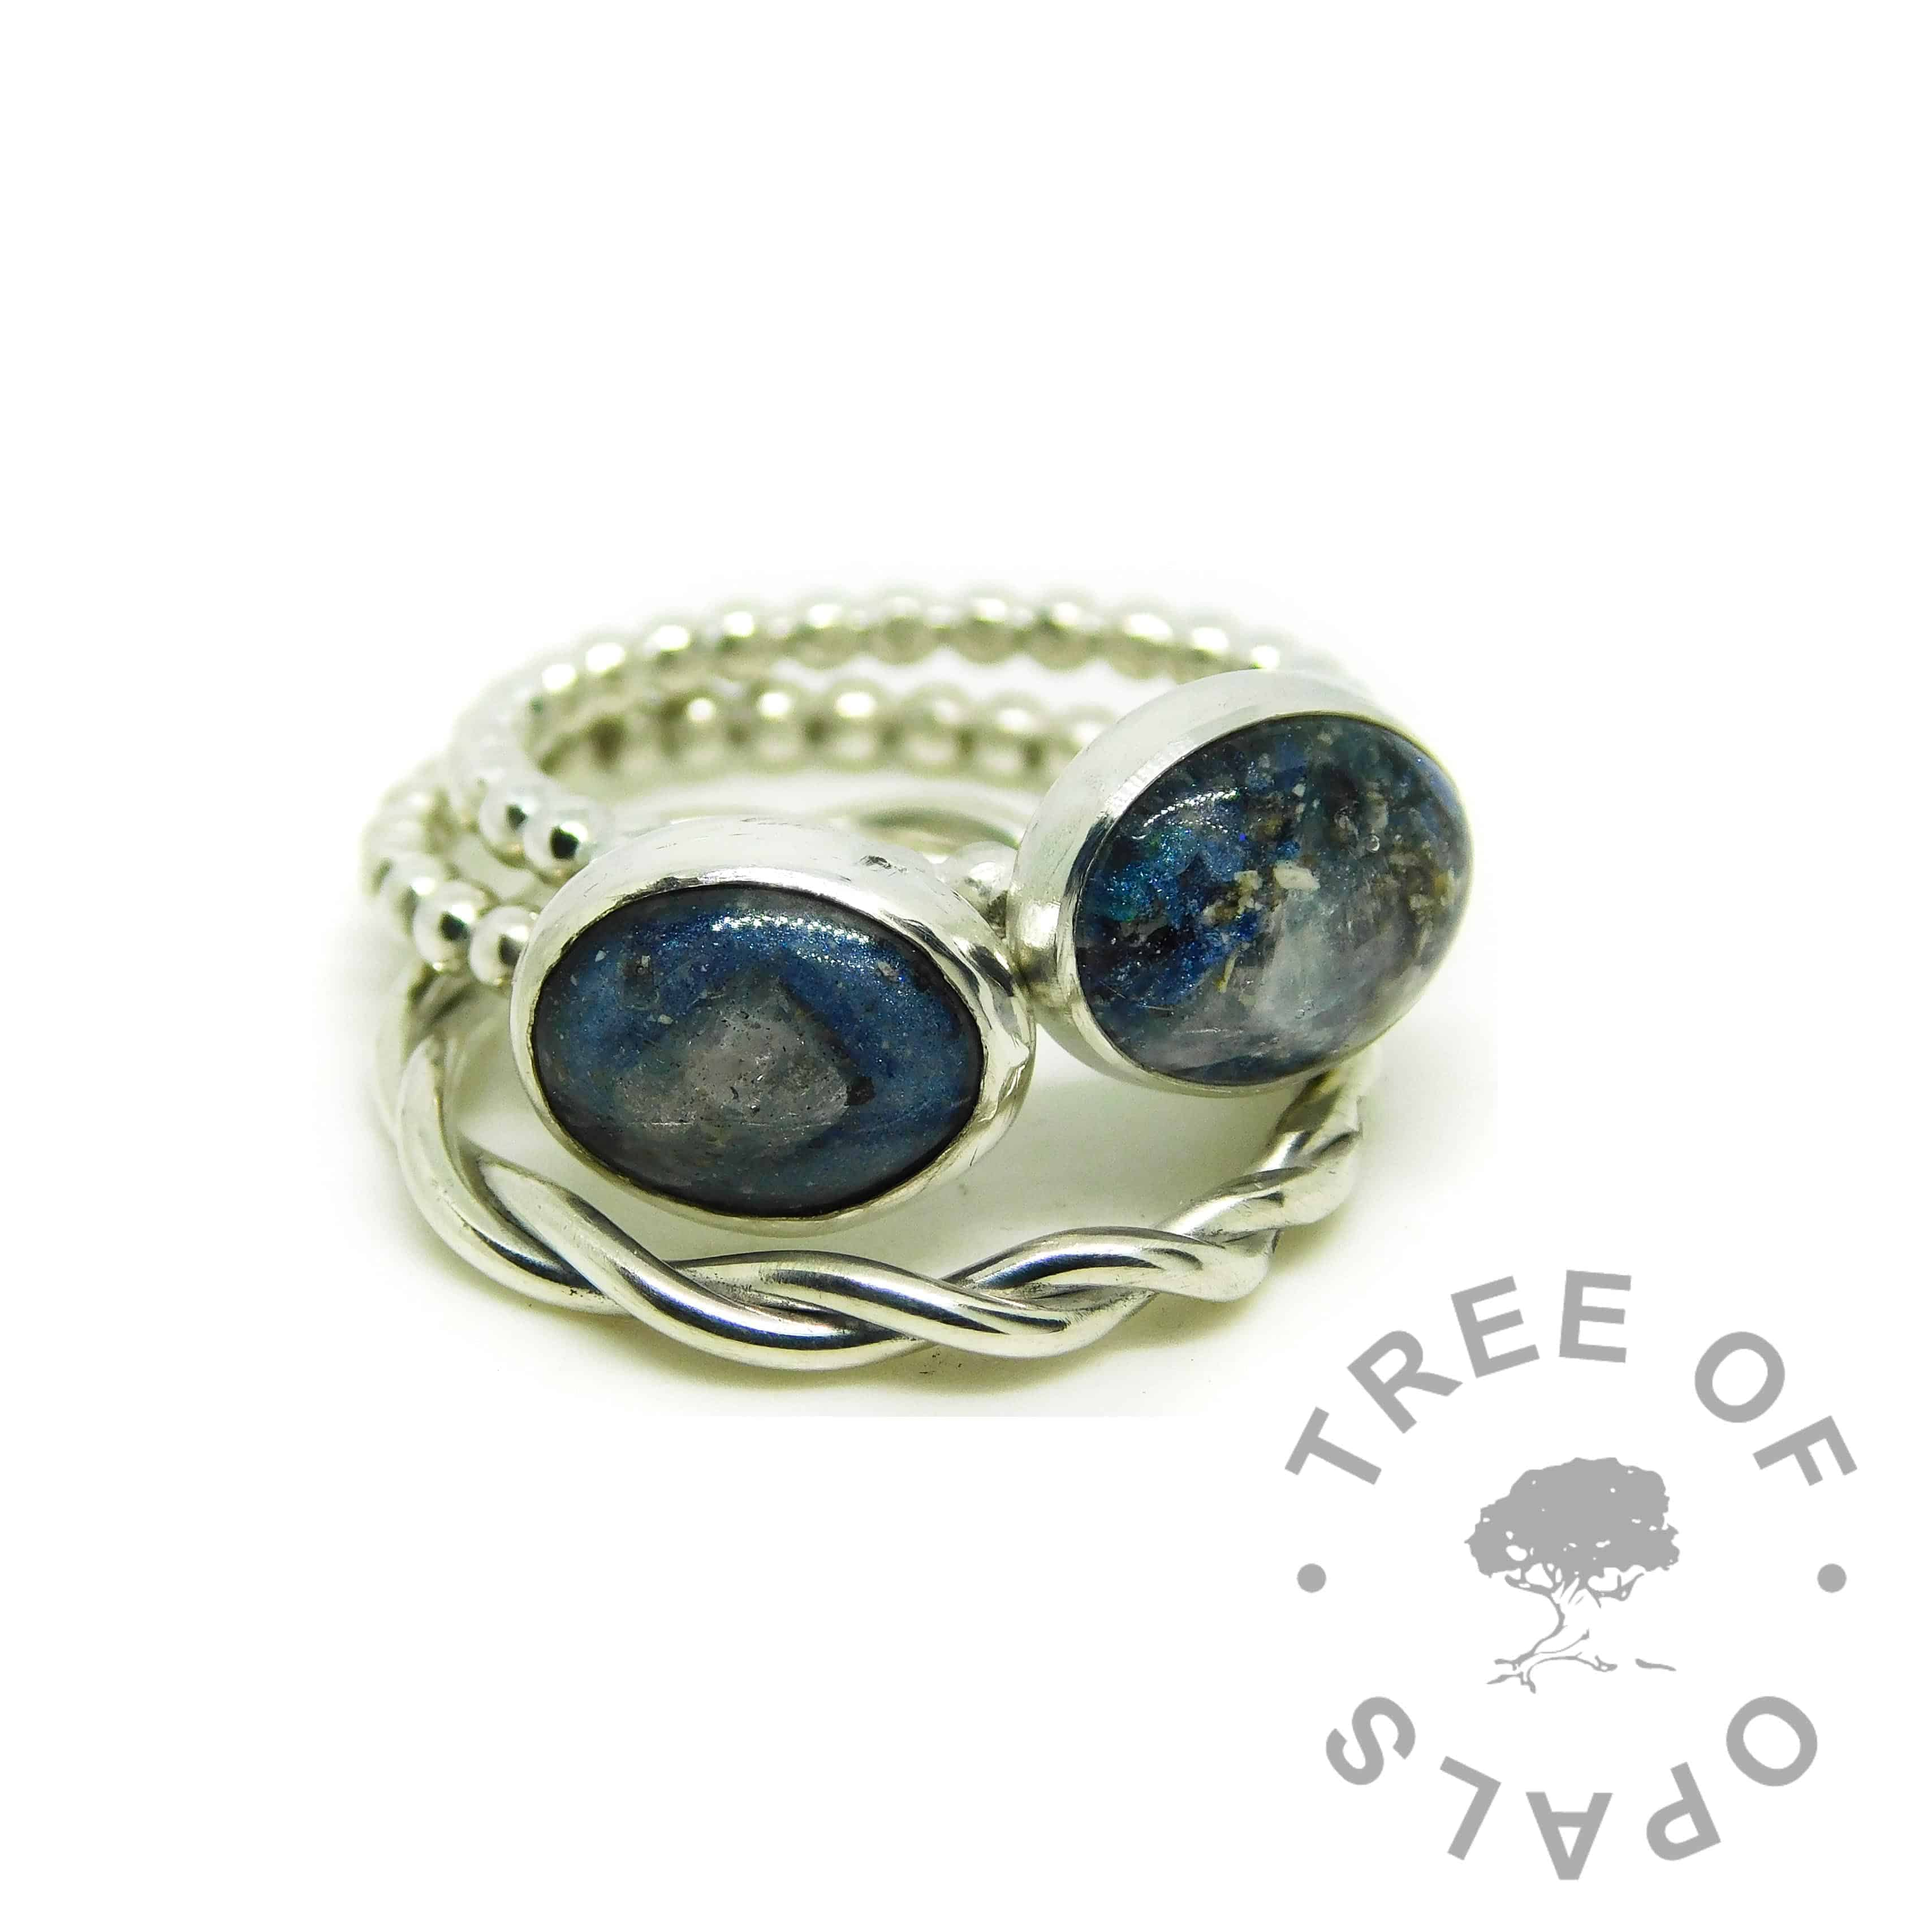 ash rings with Aegean blue resin sparkle mix and moonstone June birthstone. Family order two rings, stacking ring